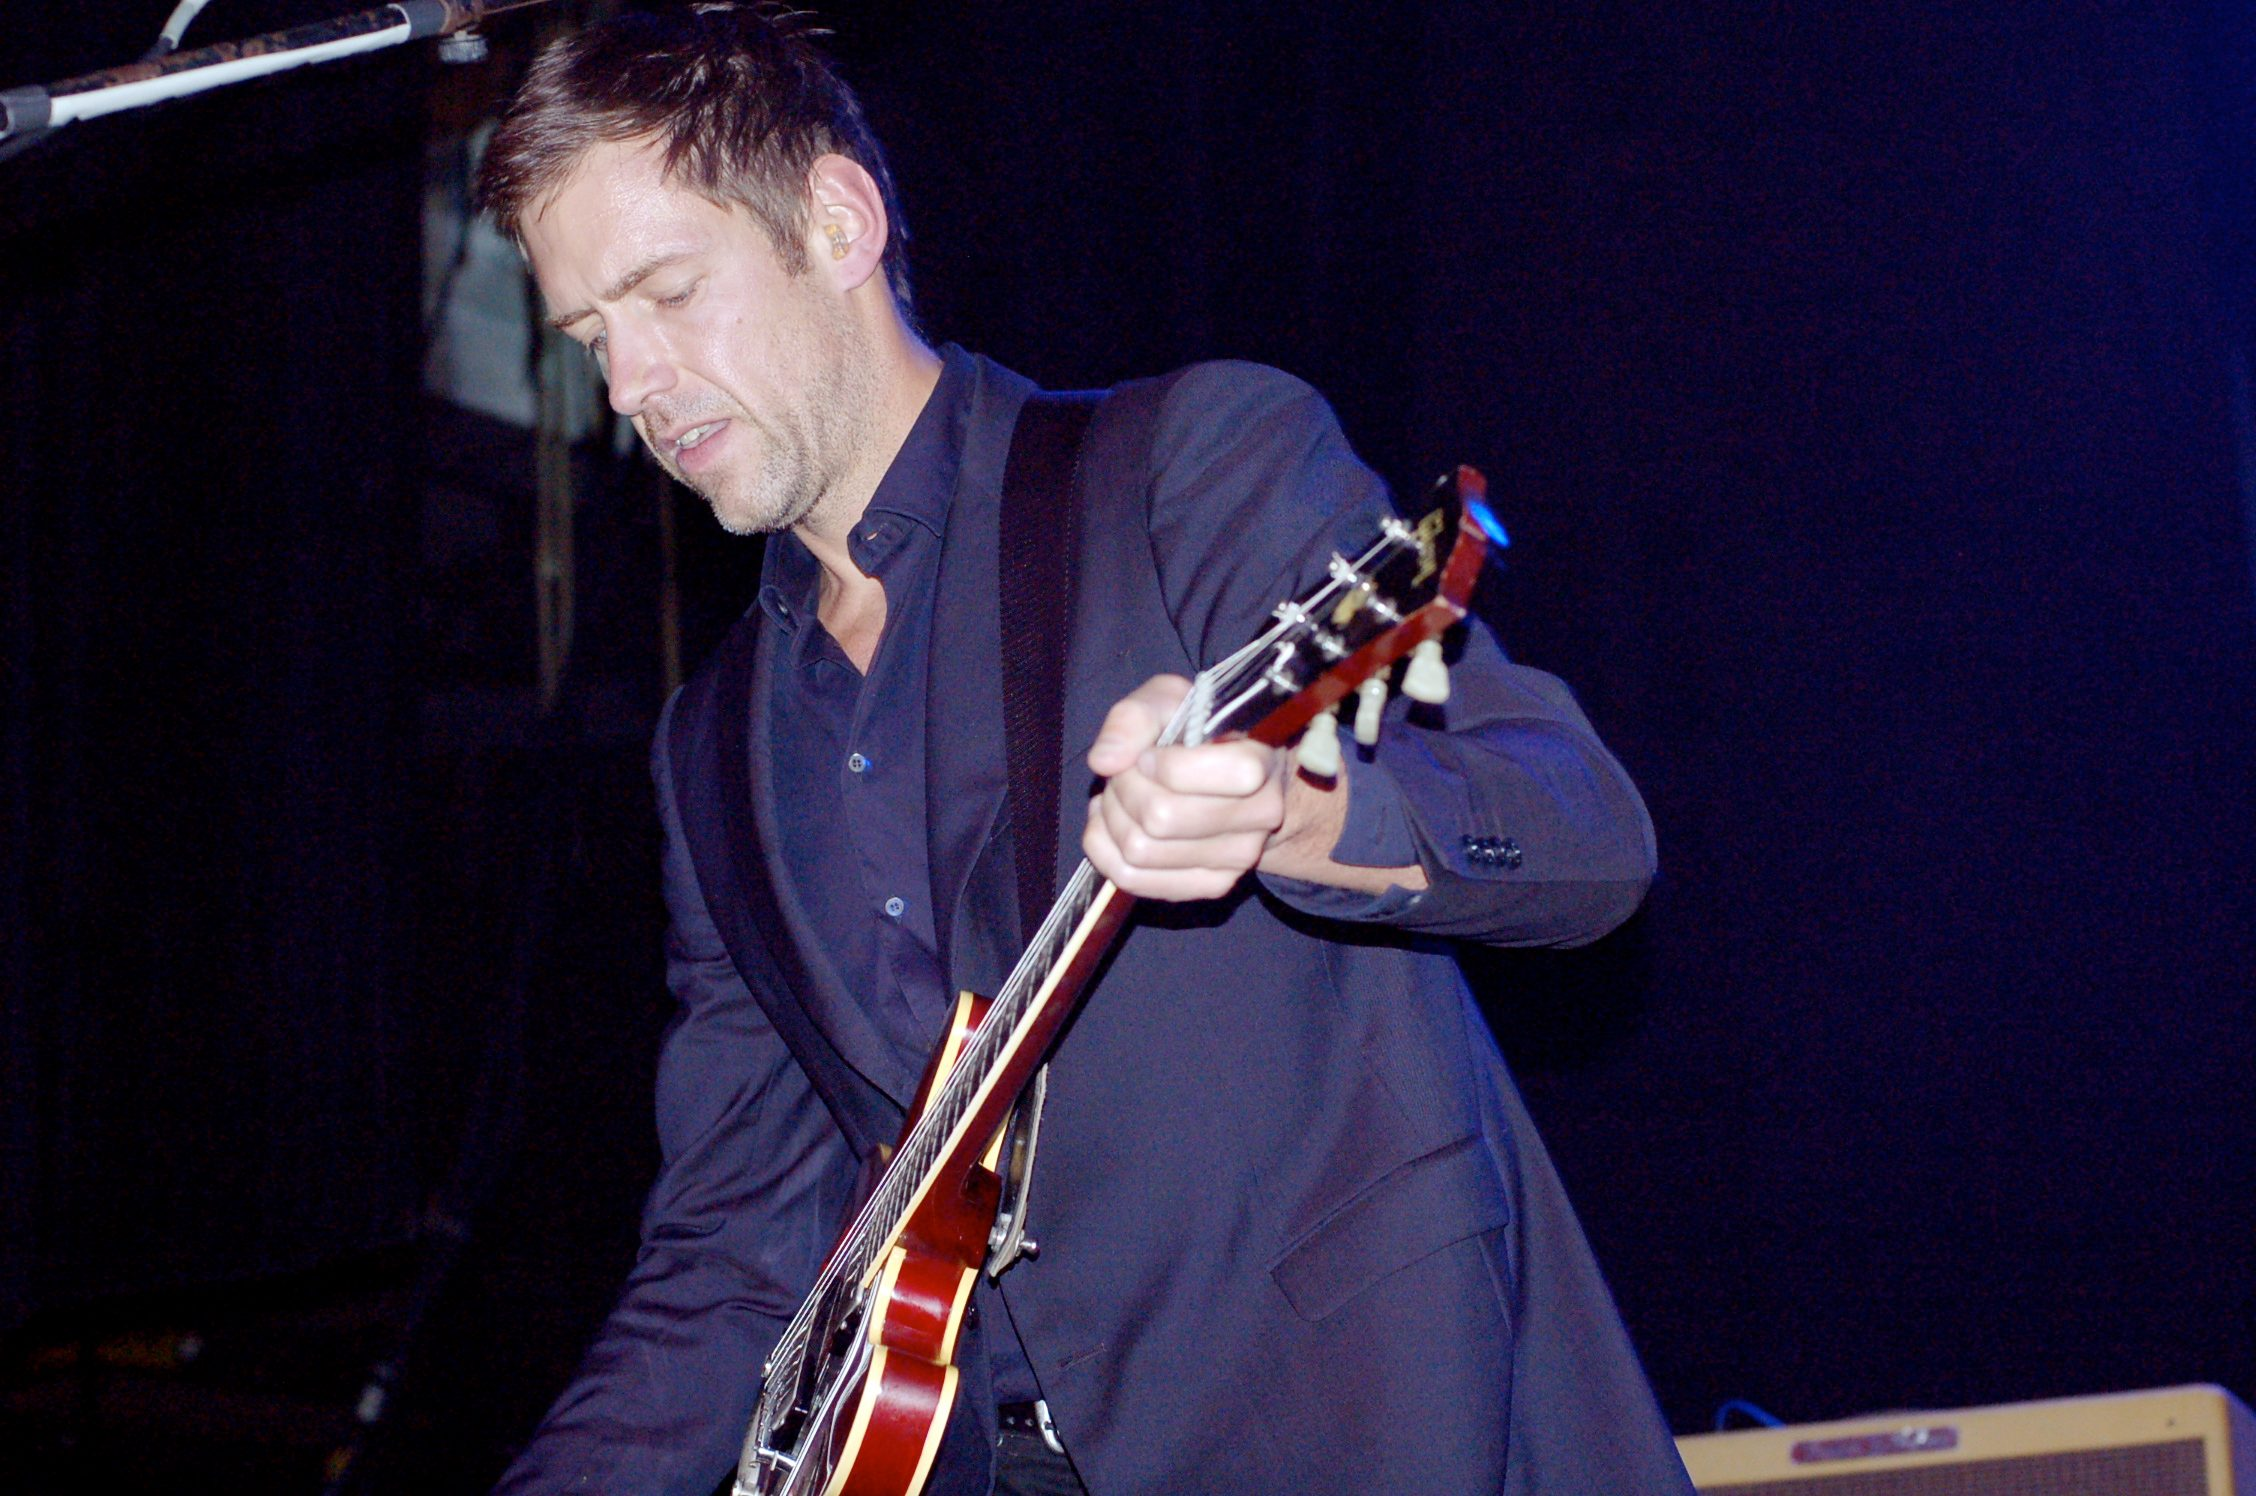 See Radiohead Guitarist Ed O'Brien Live at the Theatre at Ace Hotel 8/10/21